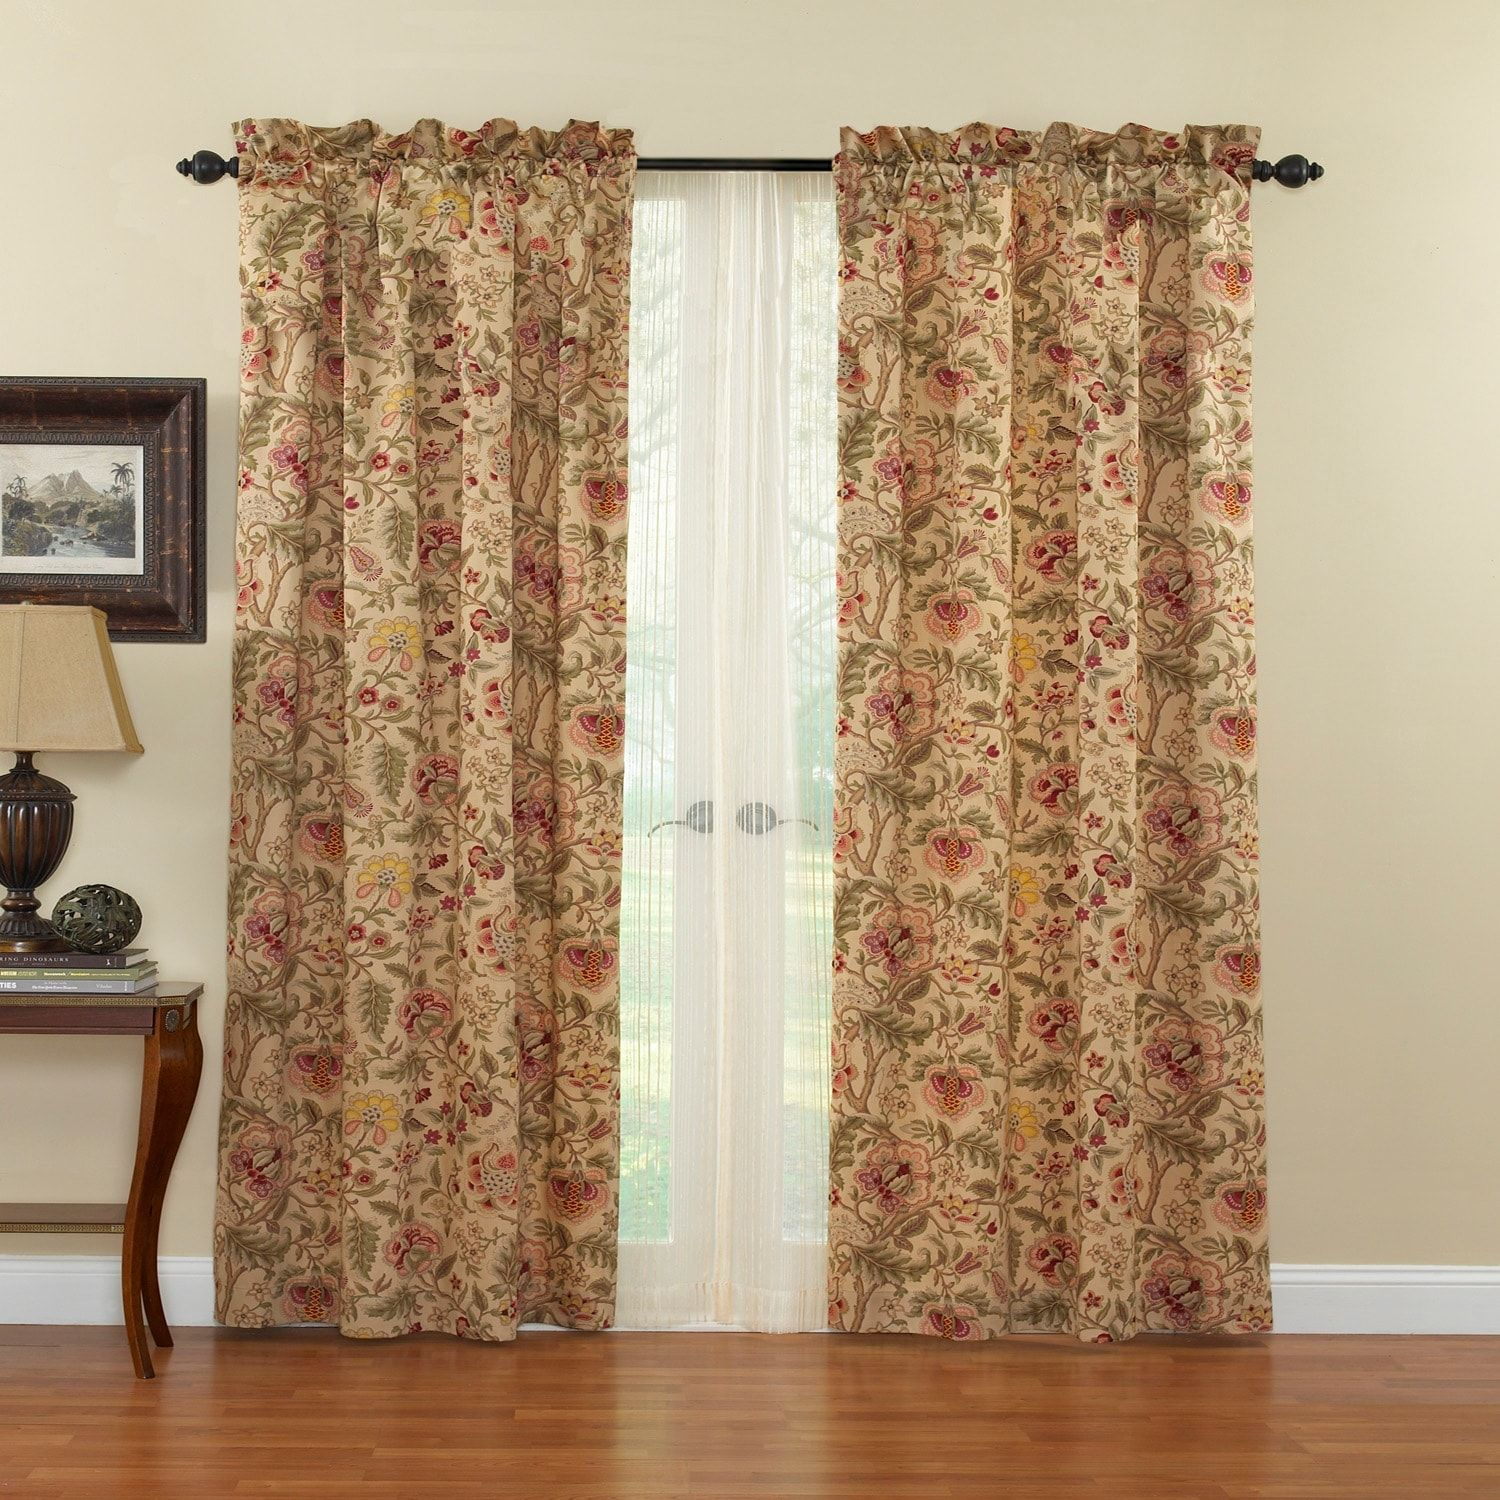 Overstock Com Online Shopping Bedding Furniture Electronics Jewelry Clothing More Panel Curtains Waverly Curtains Curtains Living Room